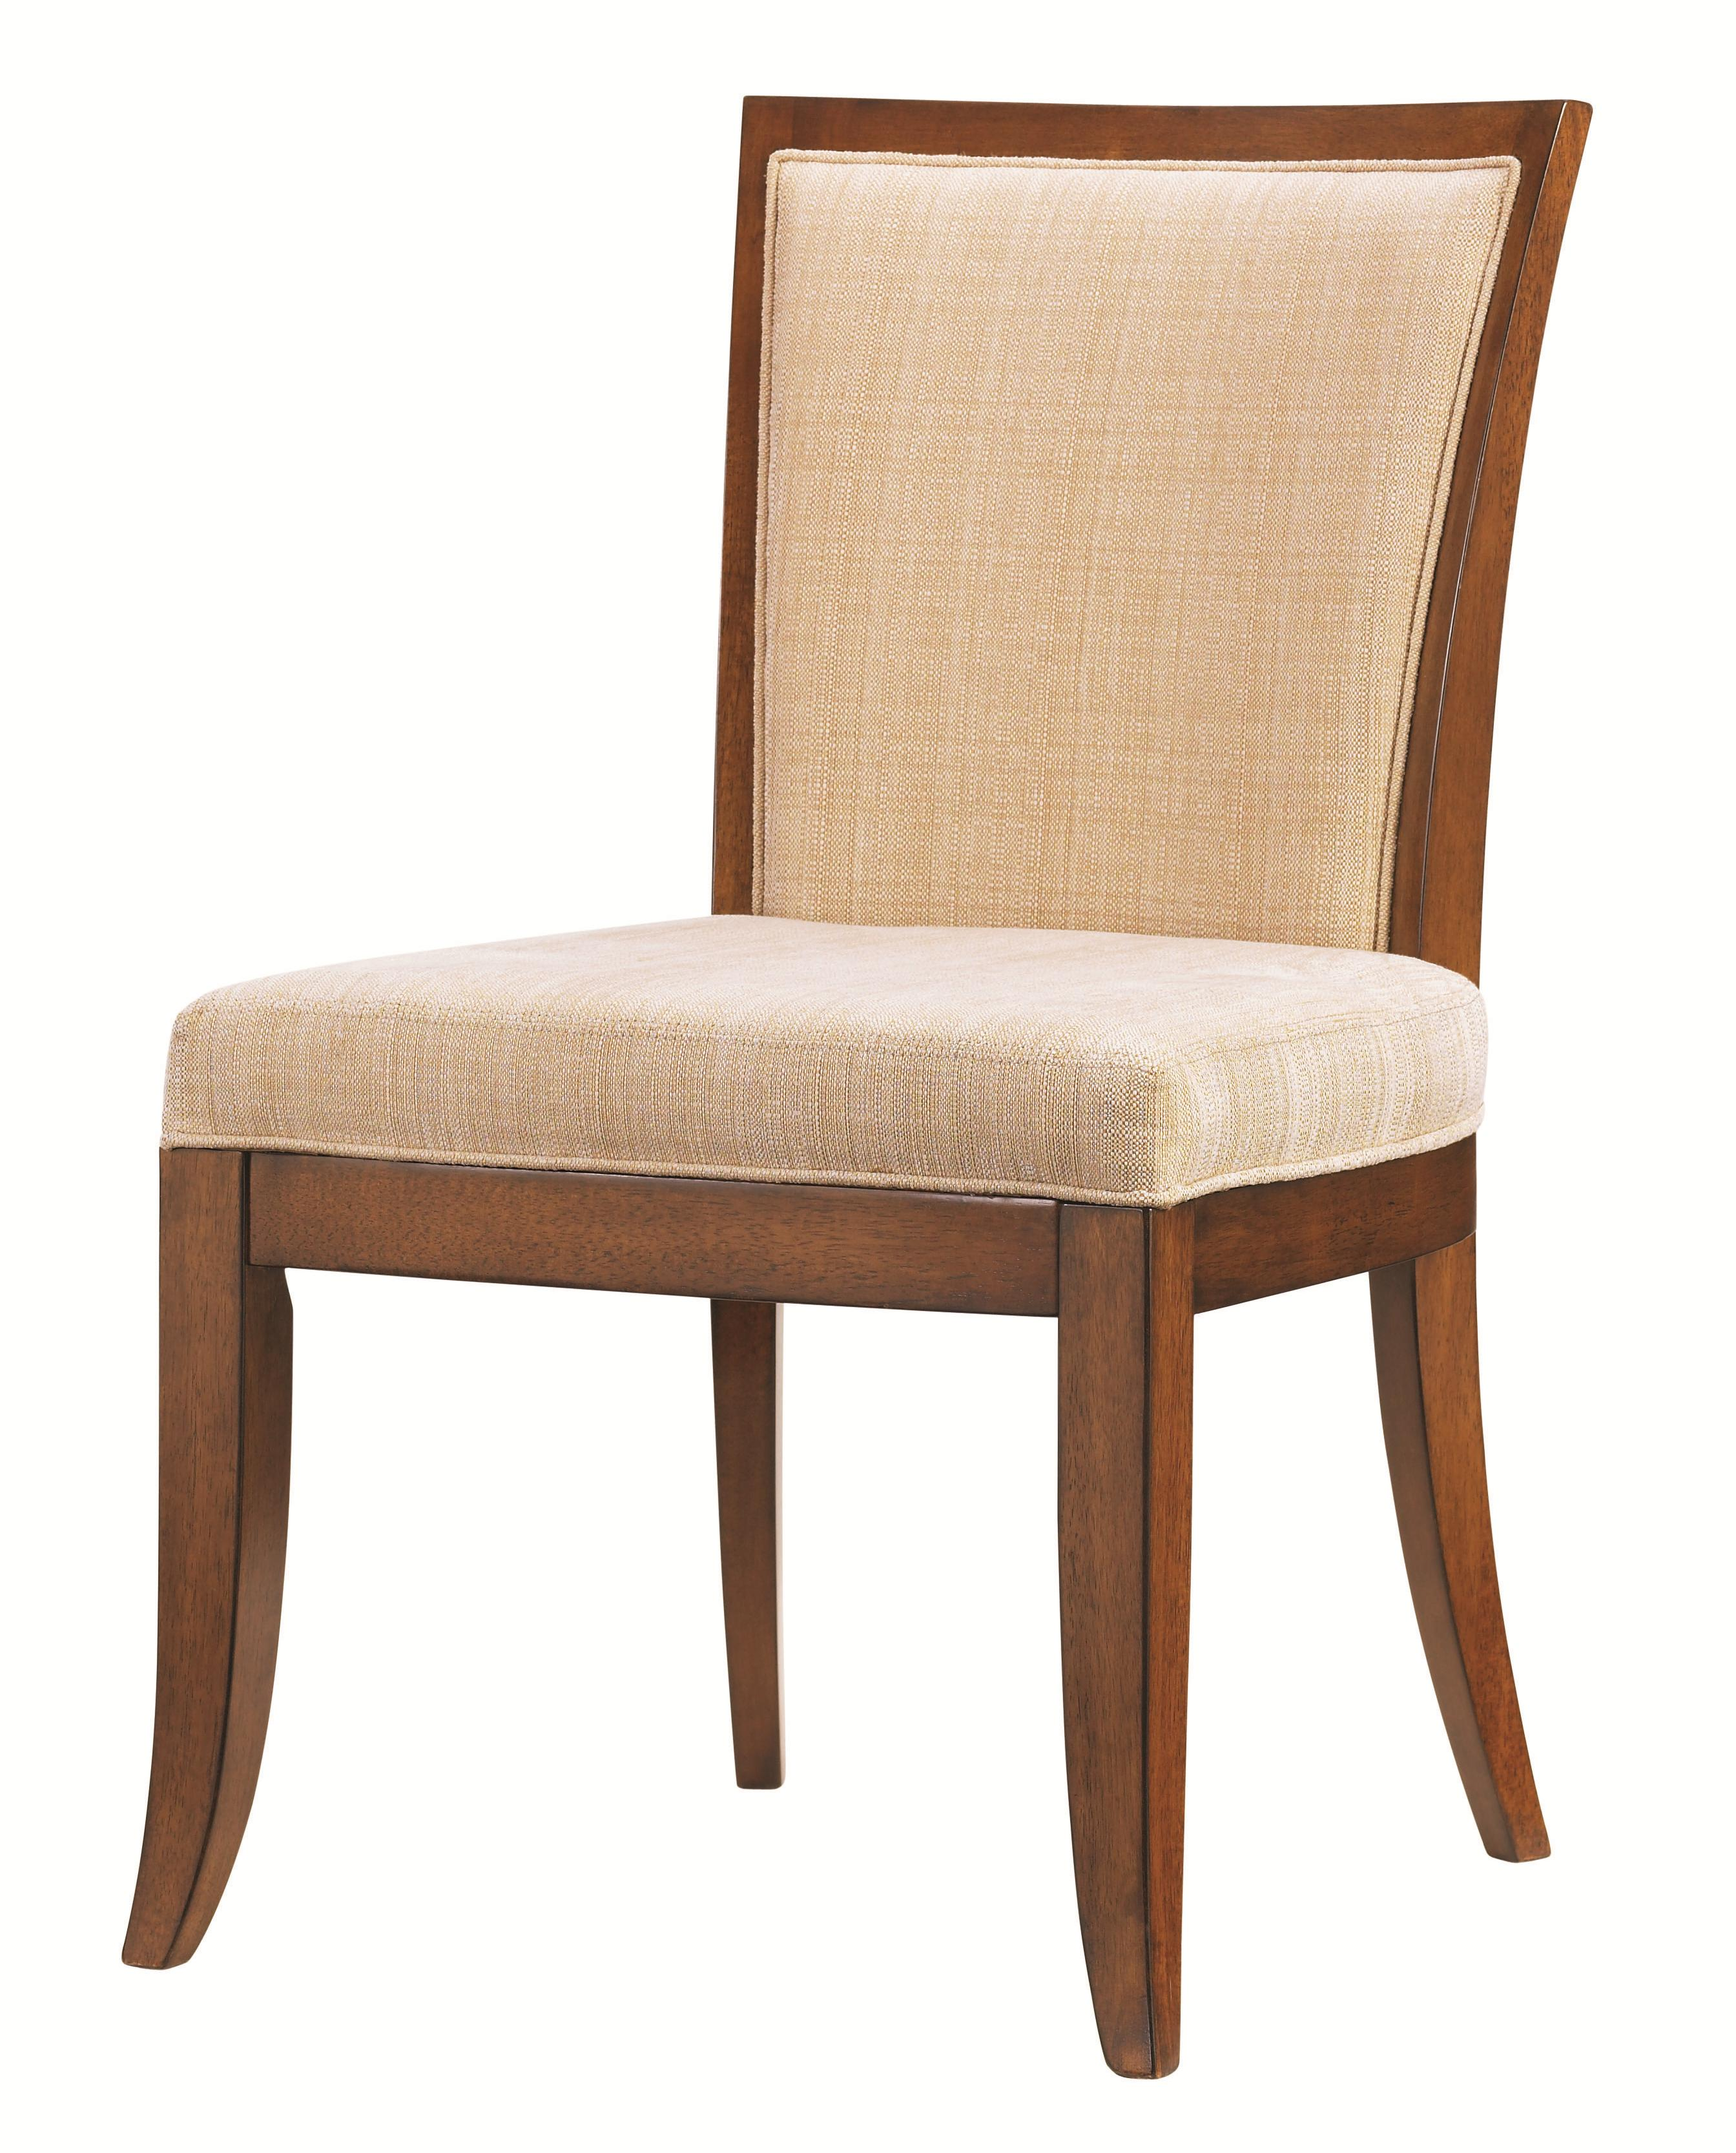 Ocean Club Kowloon Dining Side Chair by Tommy Bahama Home at C. S. Wo & Sons Hawaii